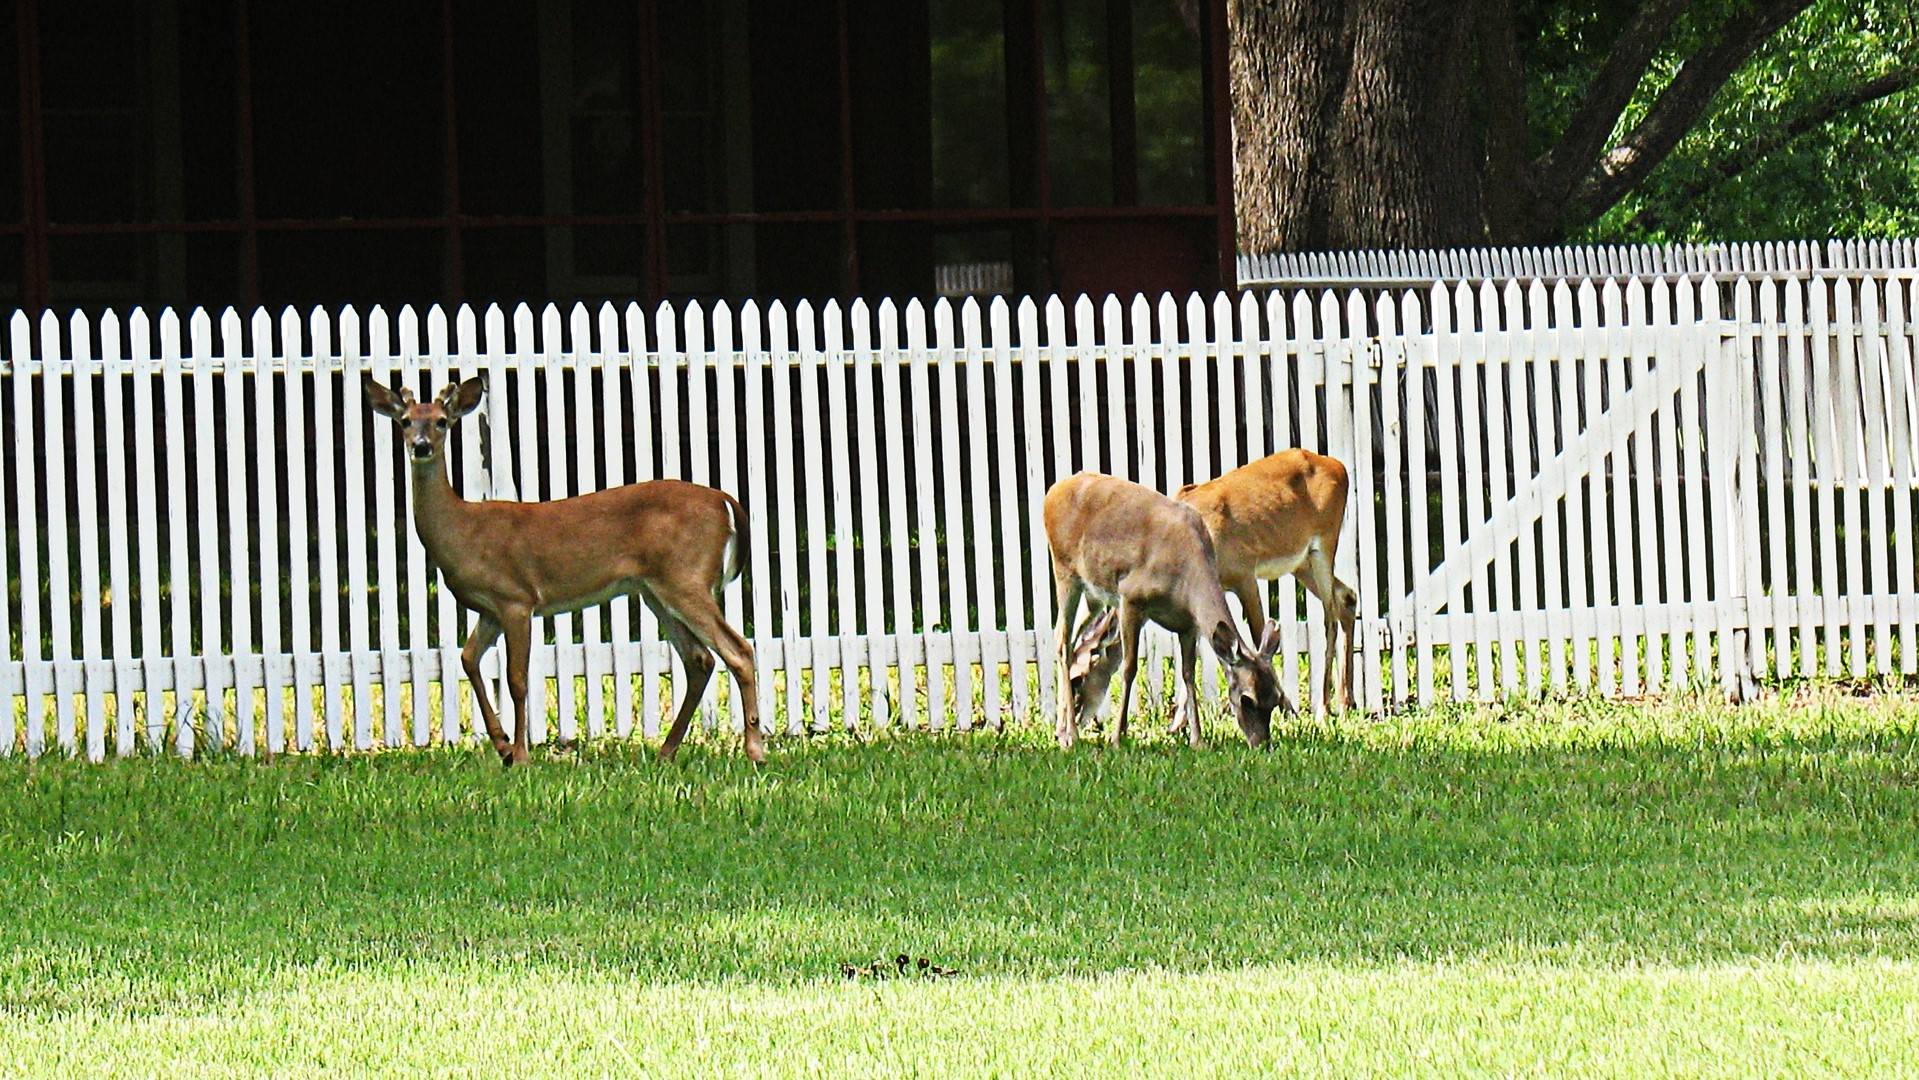 3 deer grazing near white picket fence